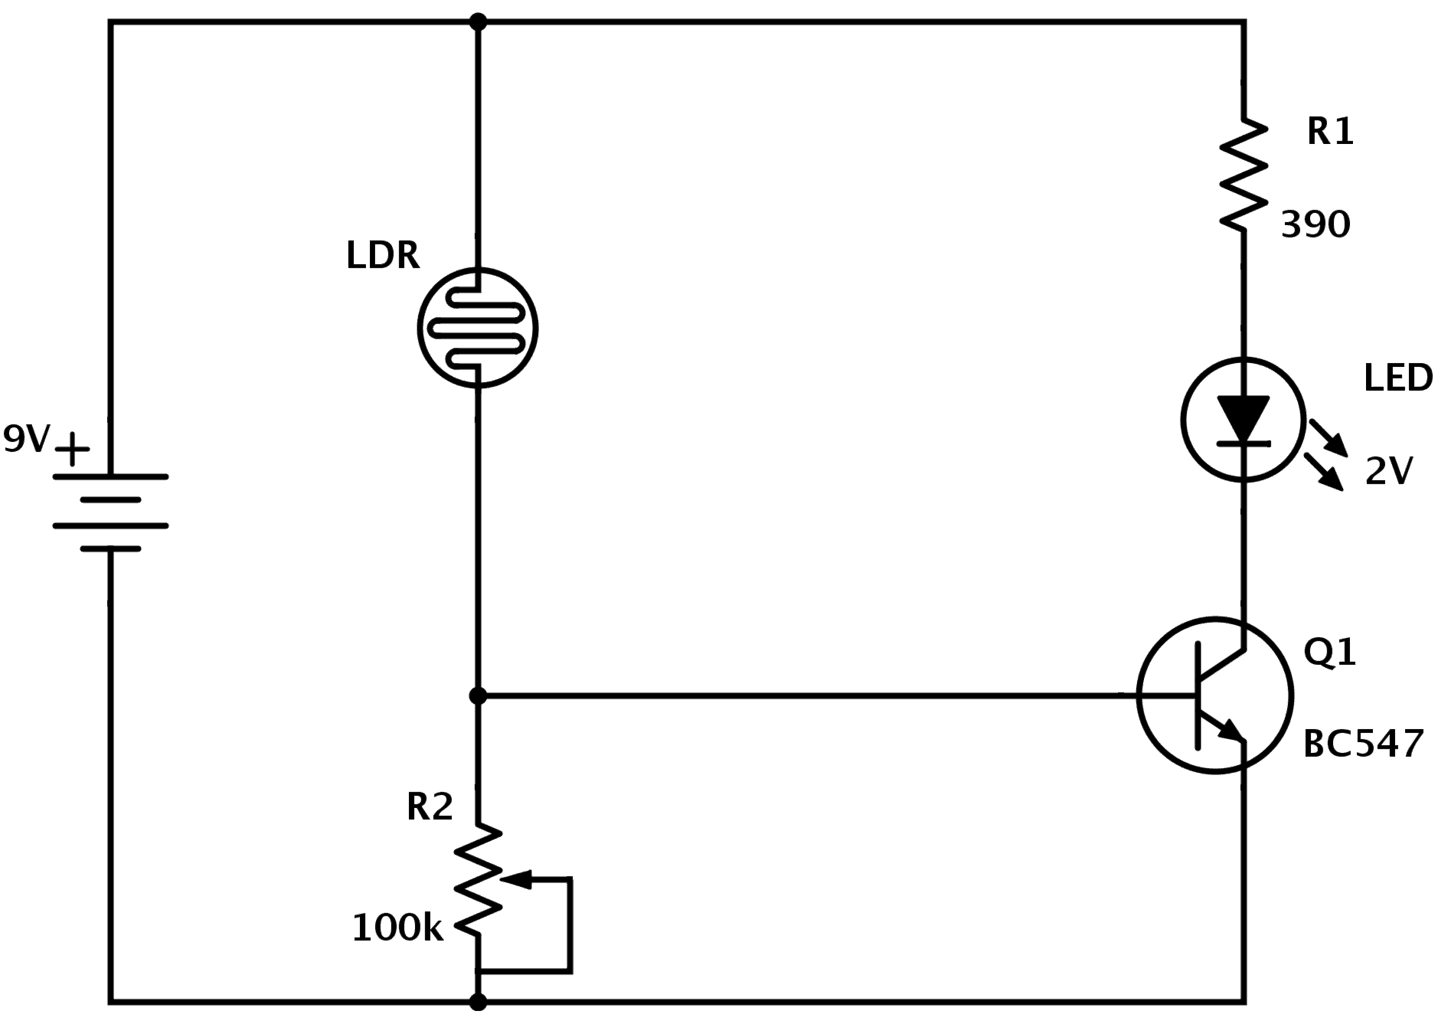 Draw Circuit Diagram Good Guide Of Wiring 85 S10 Free Picture Schematic A Simple Diagrams Scematic Rh 65 Jessicadonath De For